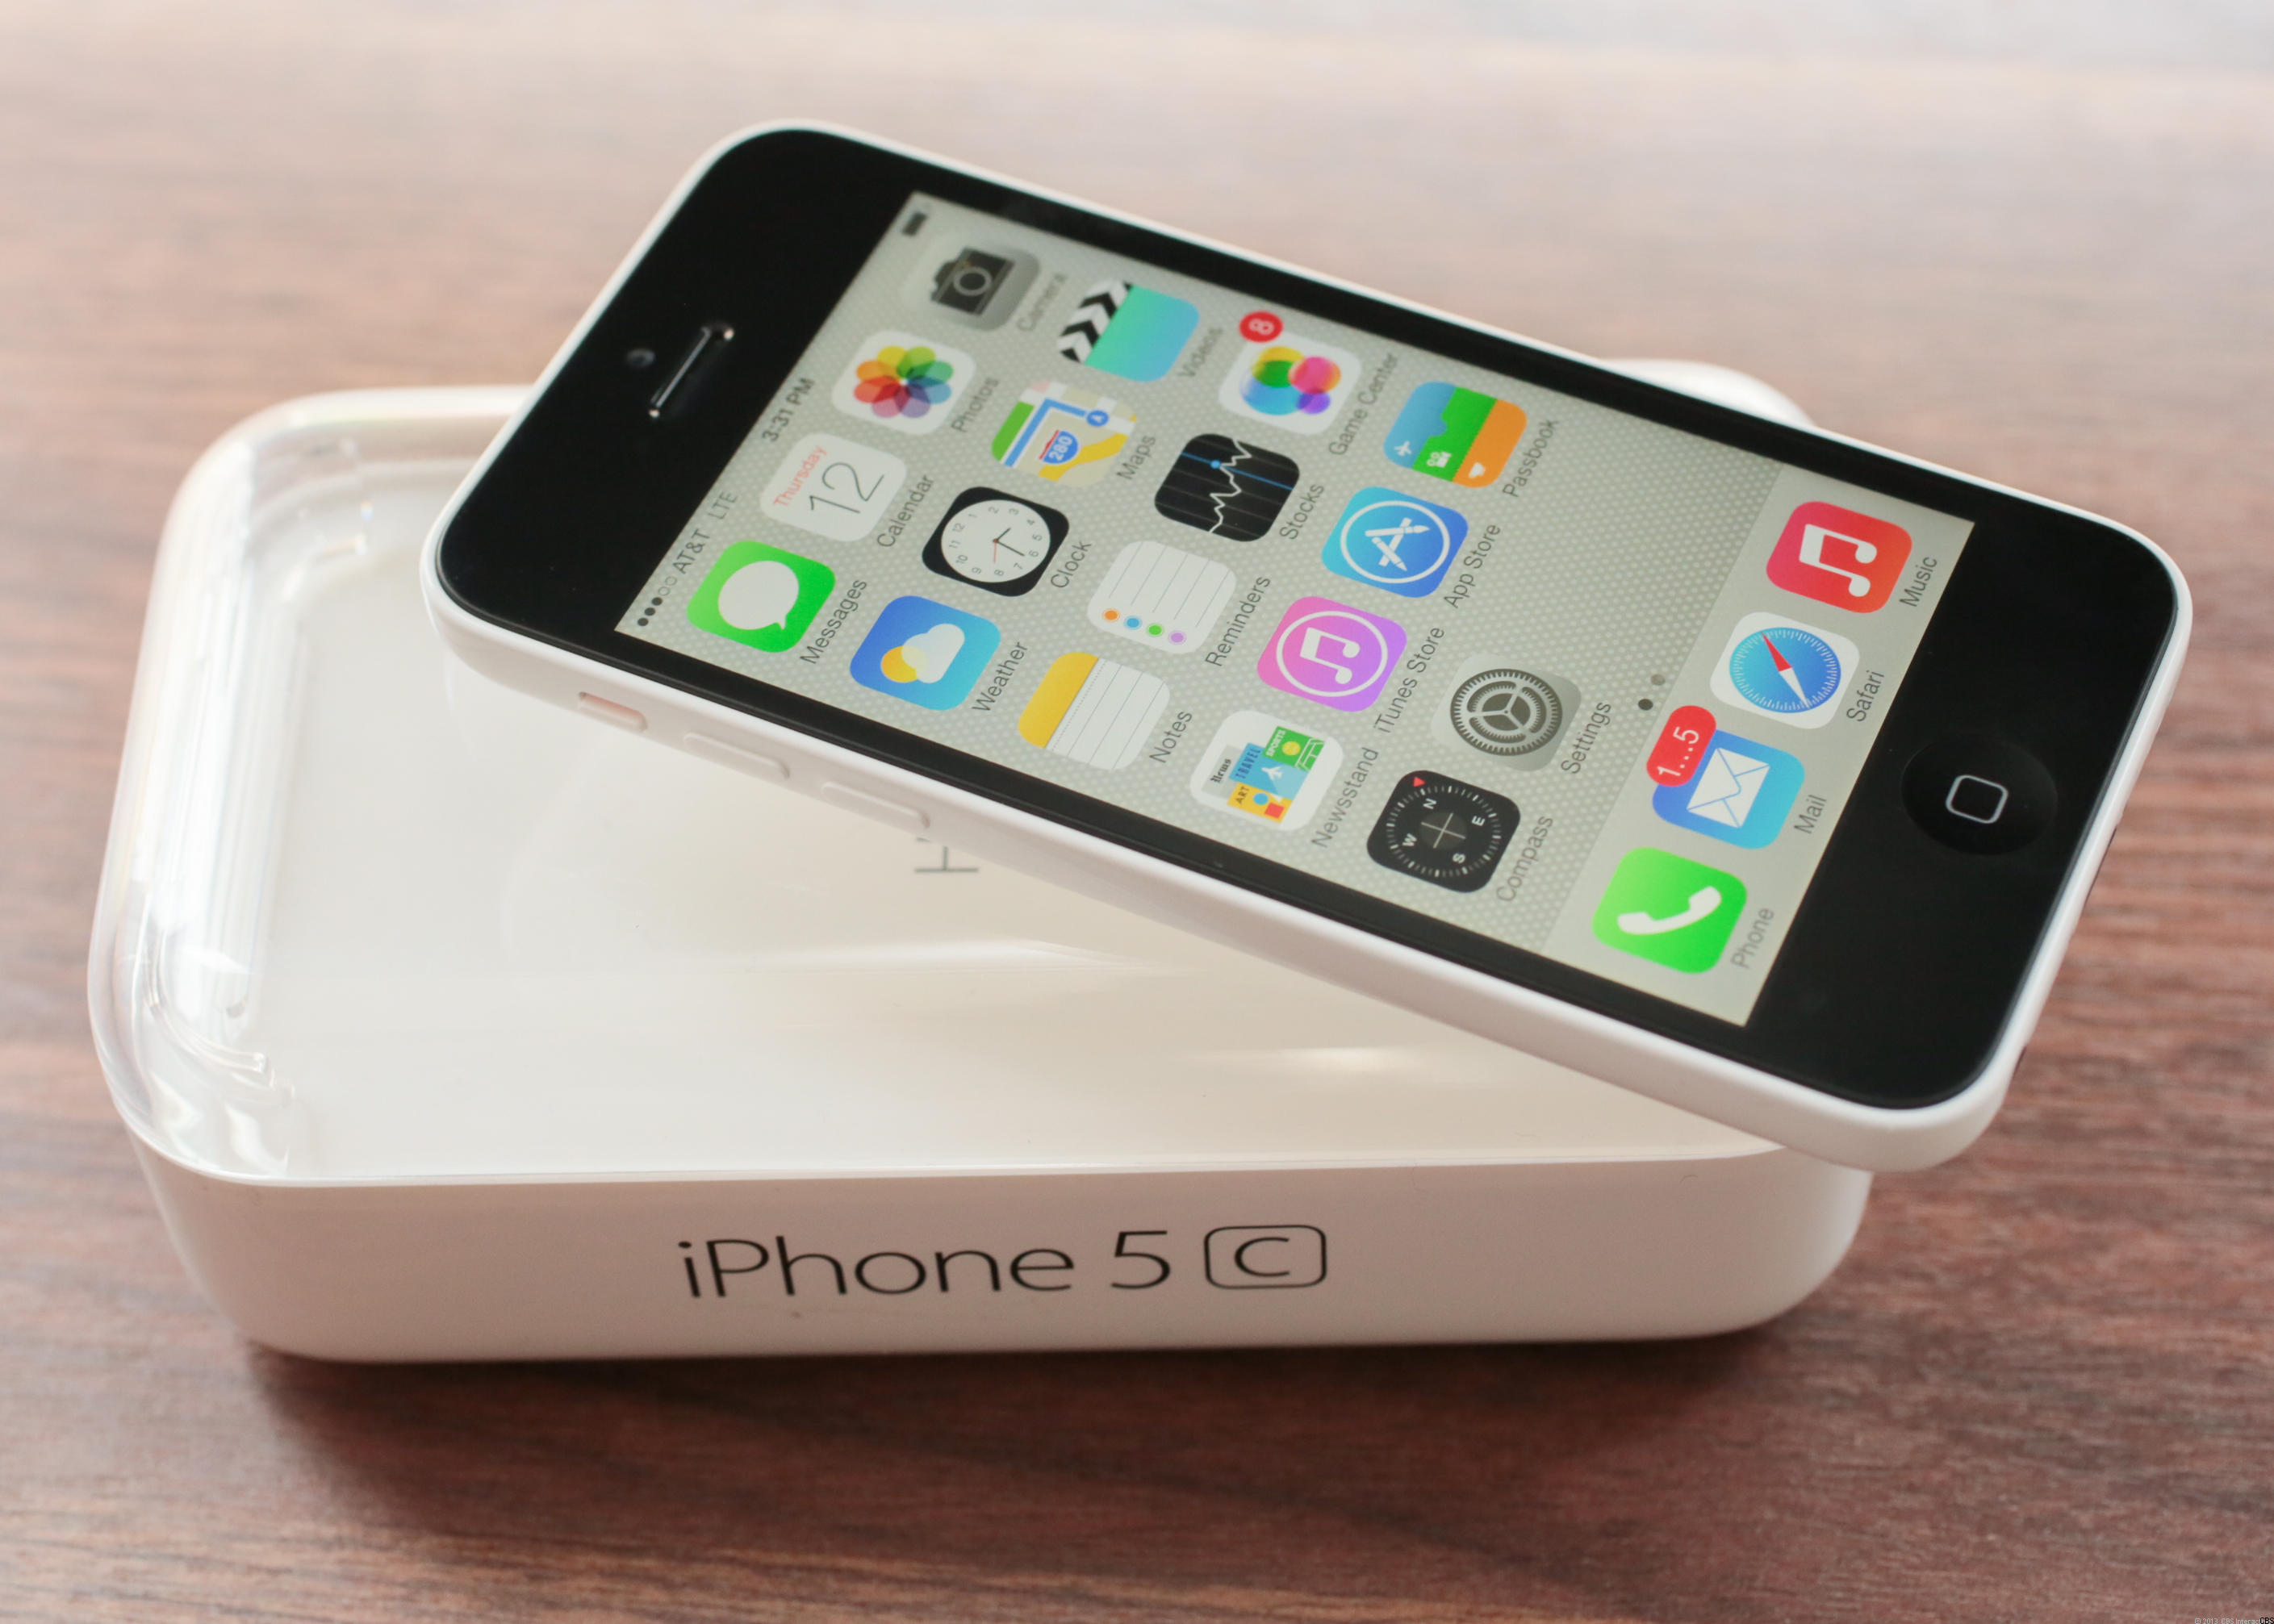 5 tips for using new iPhone 5C, iPhone 5S, or Apple iOS 7 ... Iphone 5 6 7 8 9